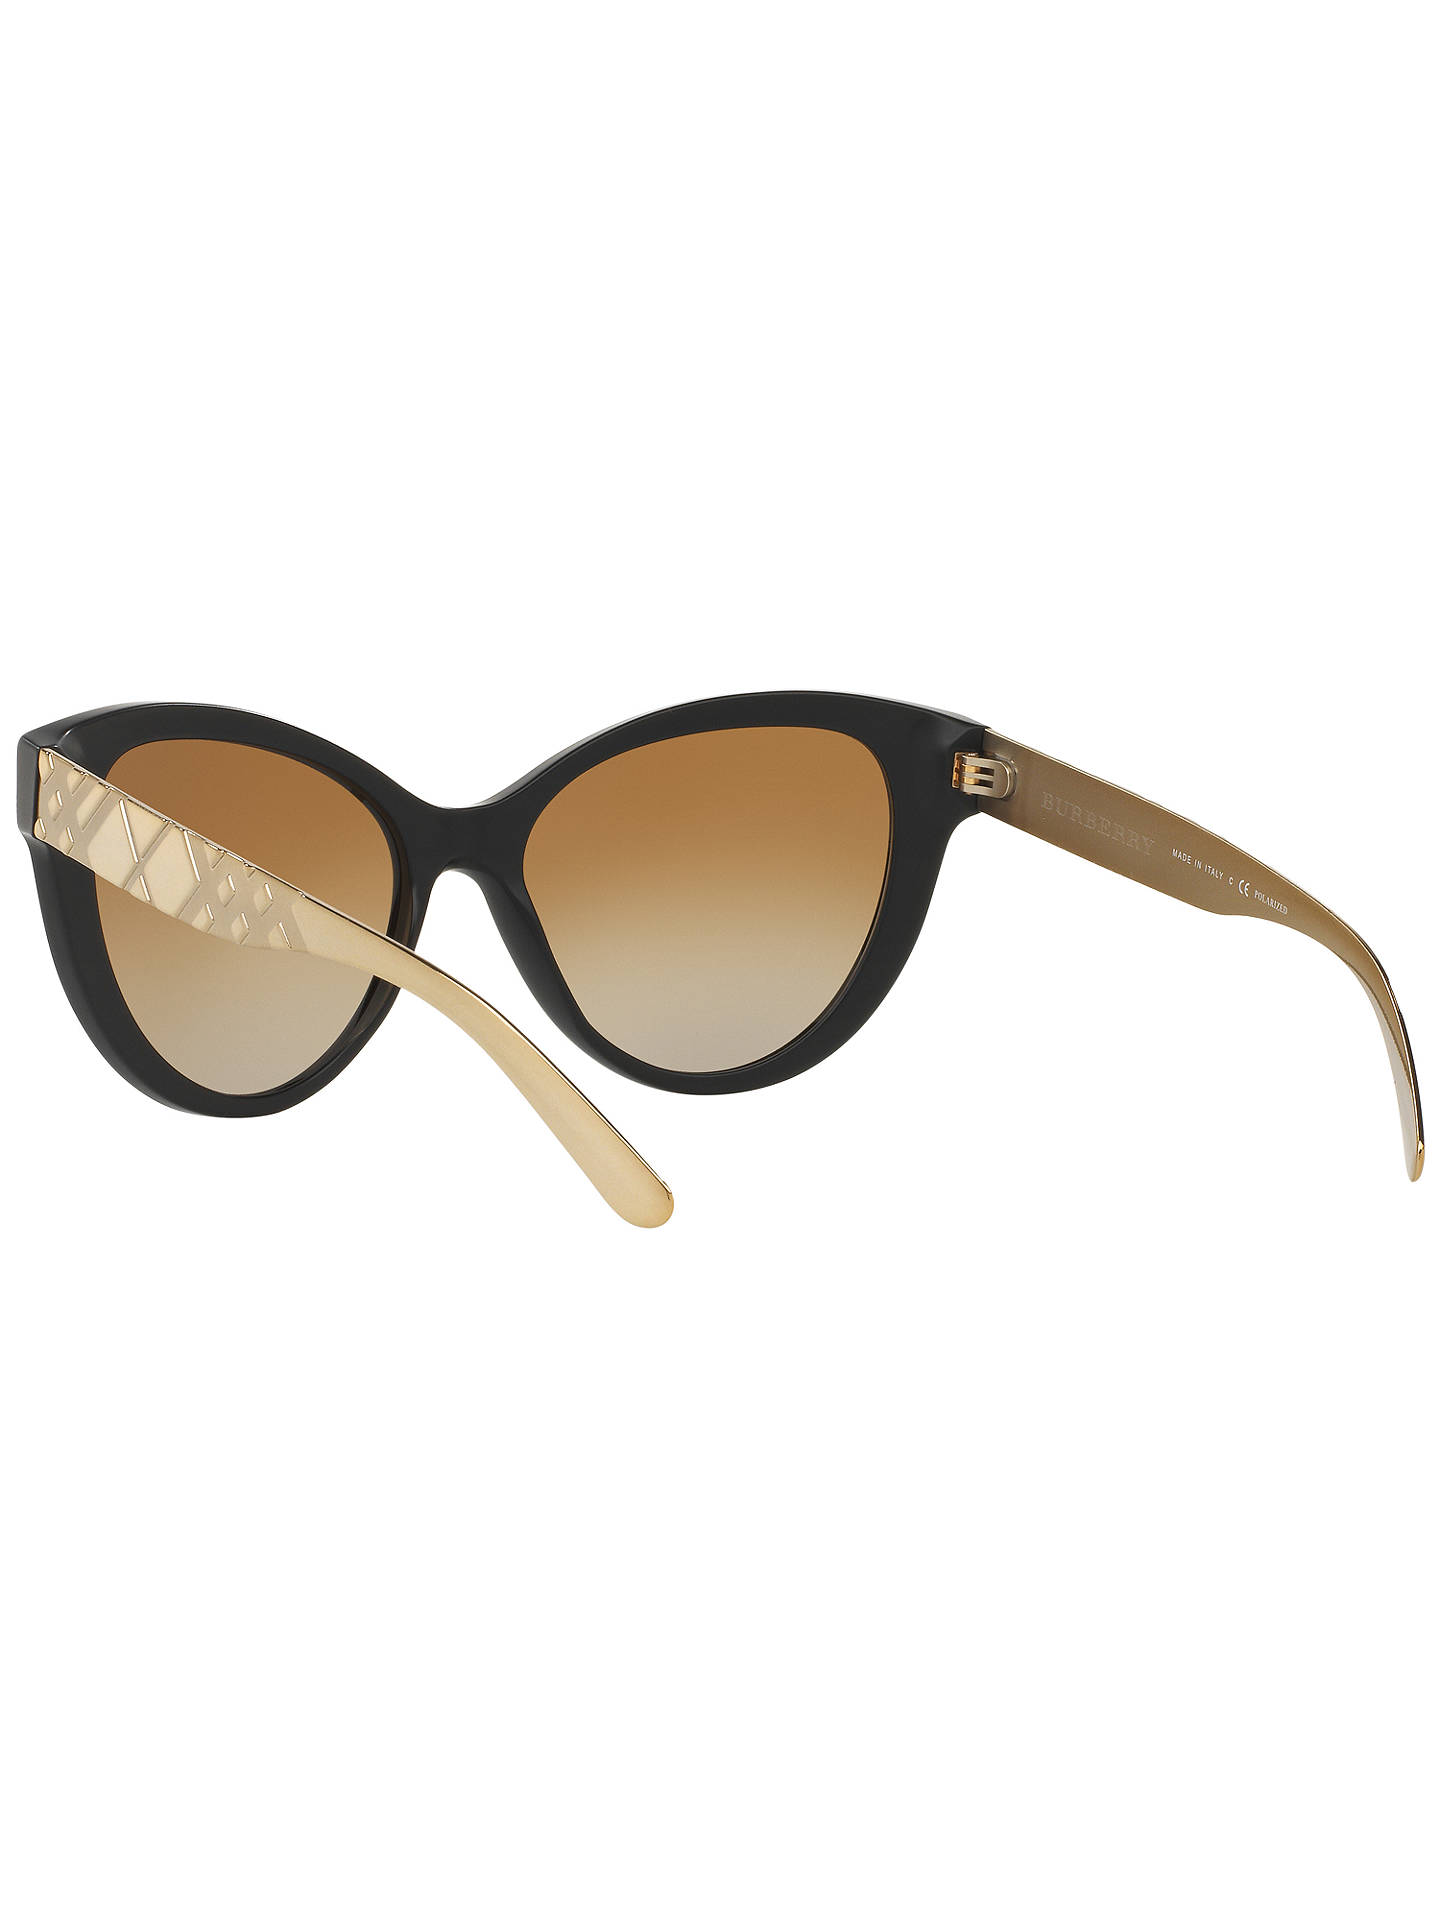 BuyBurberry BR4220 Polarised Gradient Cat's Eye Sunglasses, Black Online at johnlewis.com